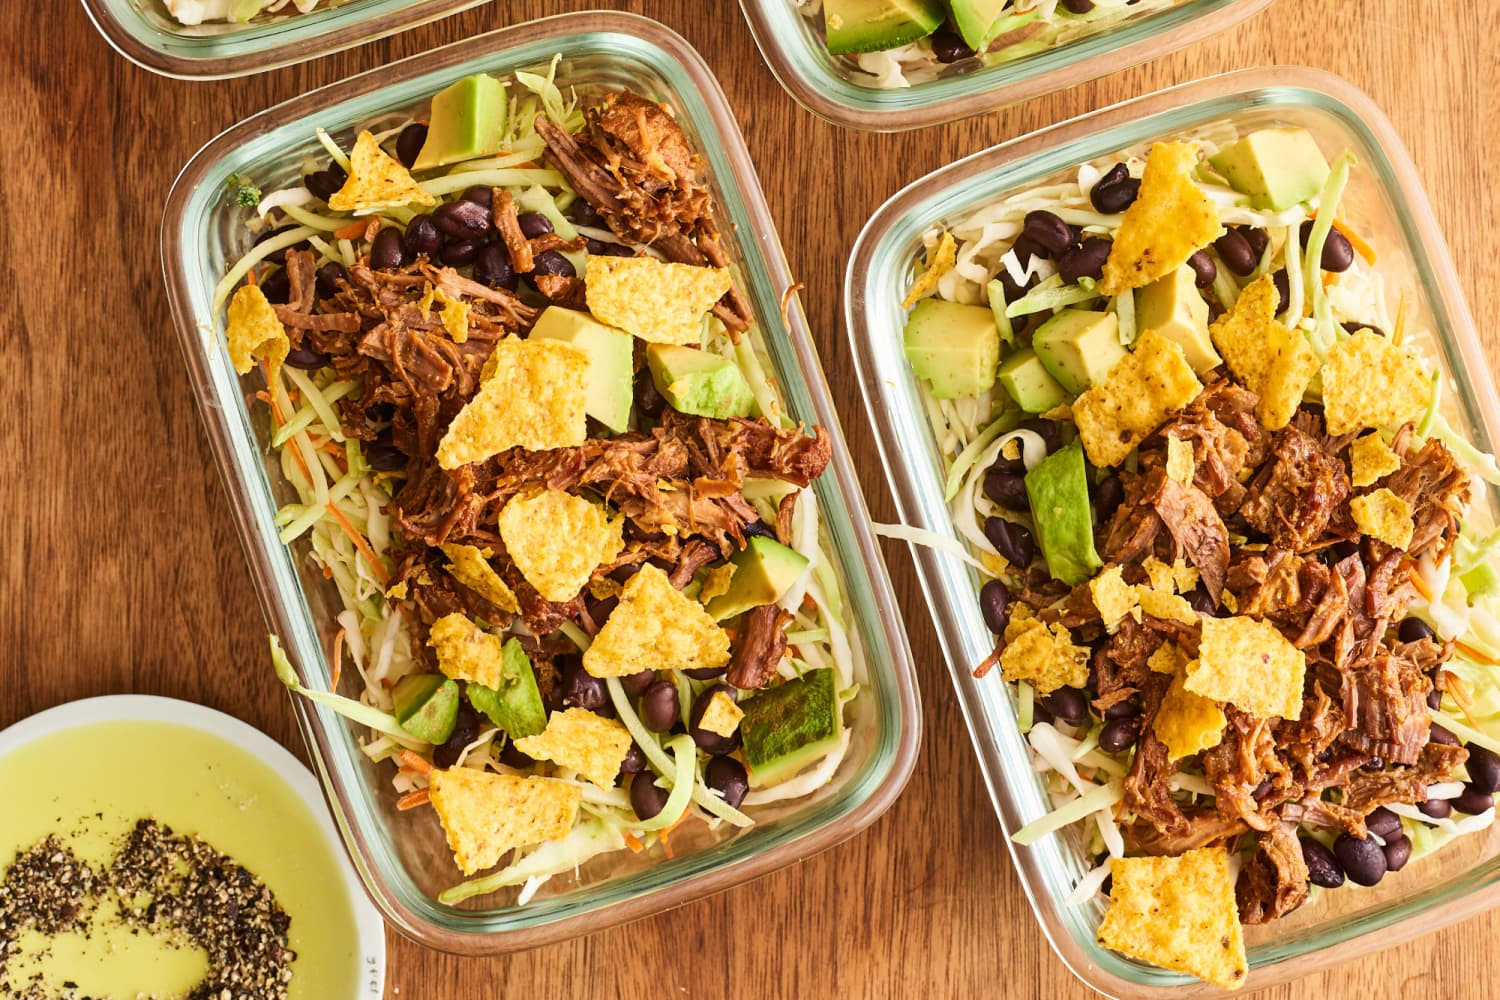 How I Prep a Week of Back-to-School Slow Cooker Dinners